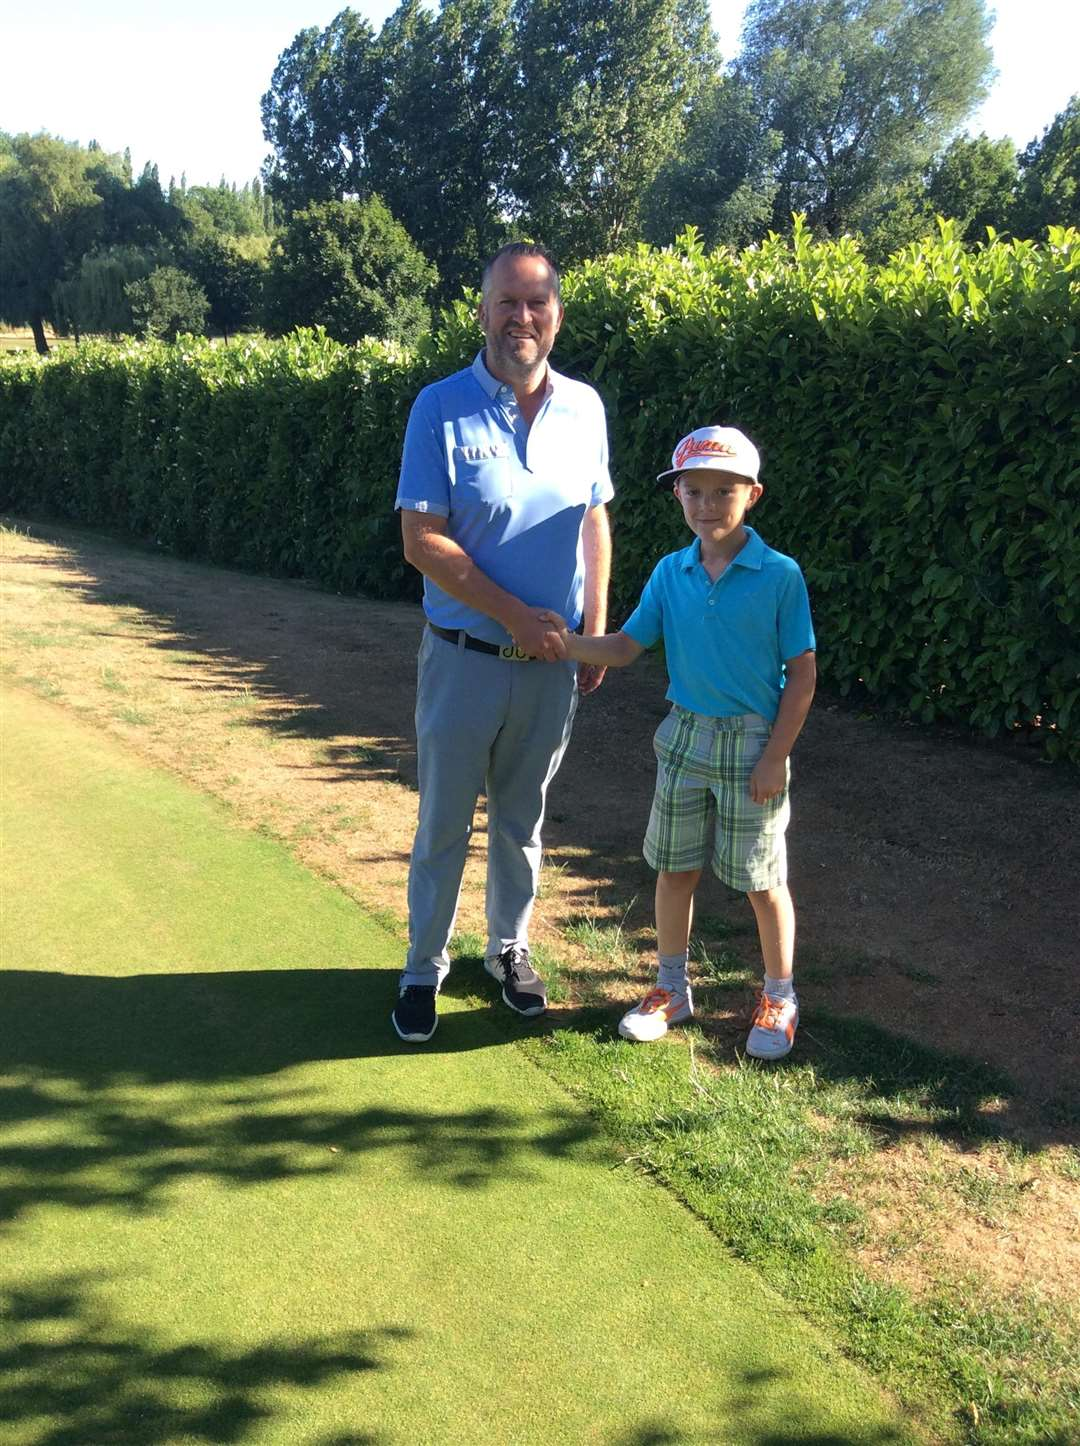 AMBITION: Haverhill GC pro Paul Wilby wishing fellow young member Ellis Kerr well ahead of the latter's participation in the 2018 IMG Academy Junior World Championships in San Diego